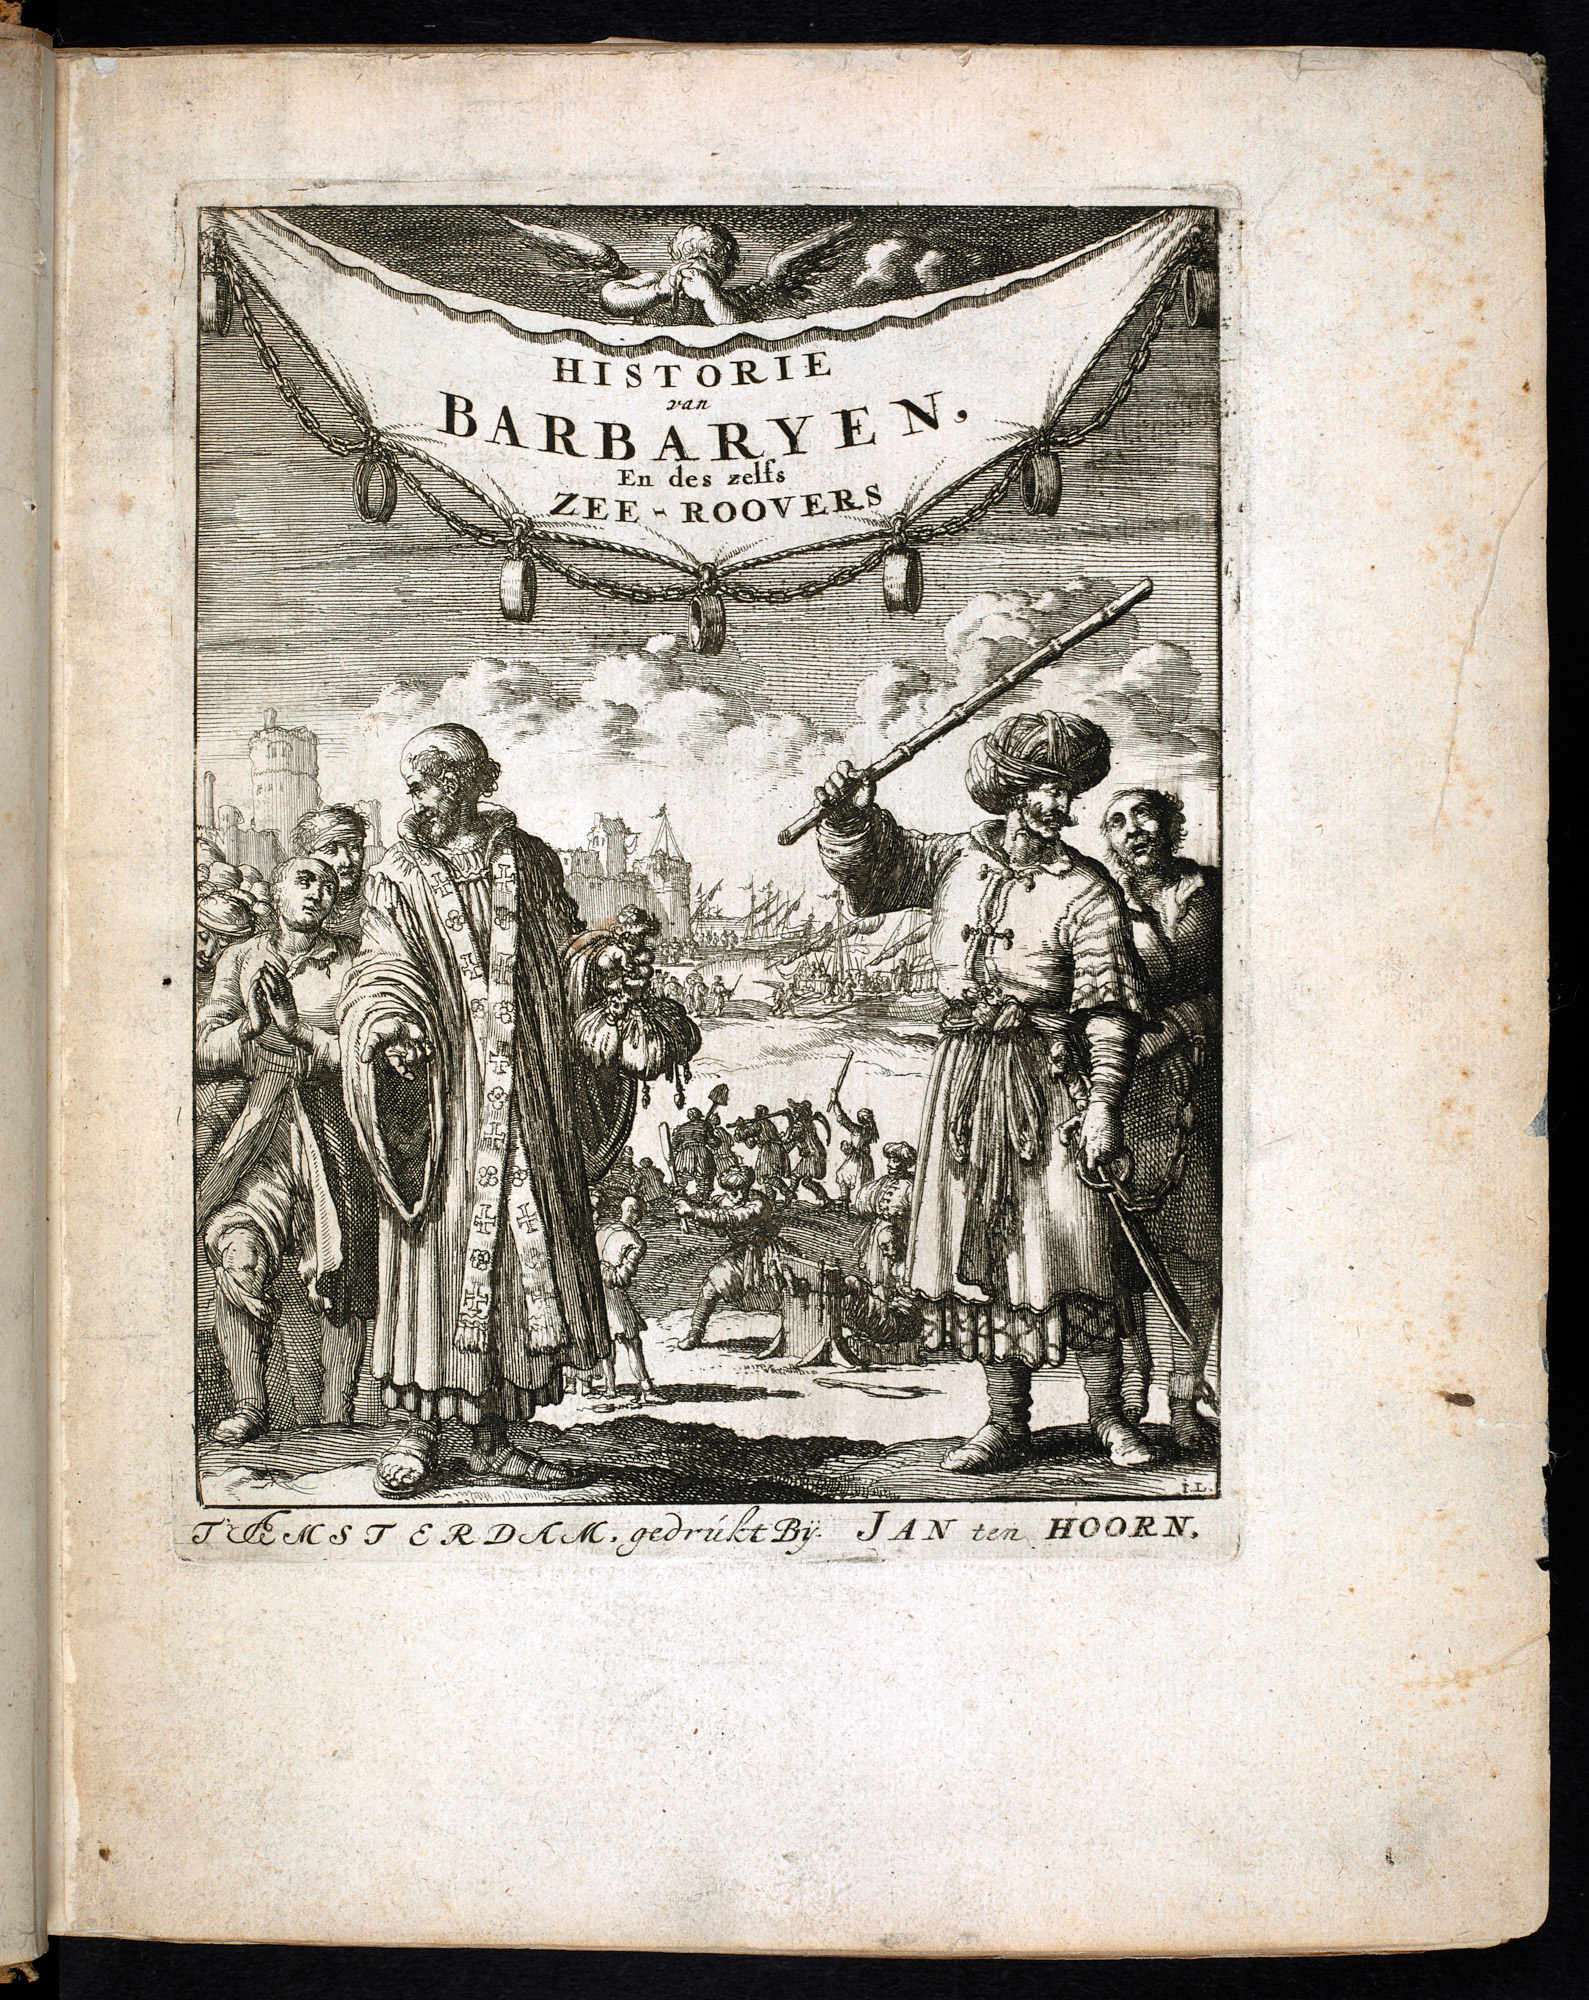 Engravings of European slaves in Pierre Dan's History of Barbary and its Pirates, 1684